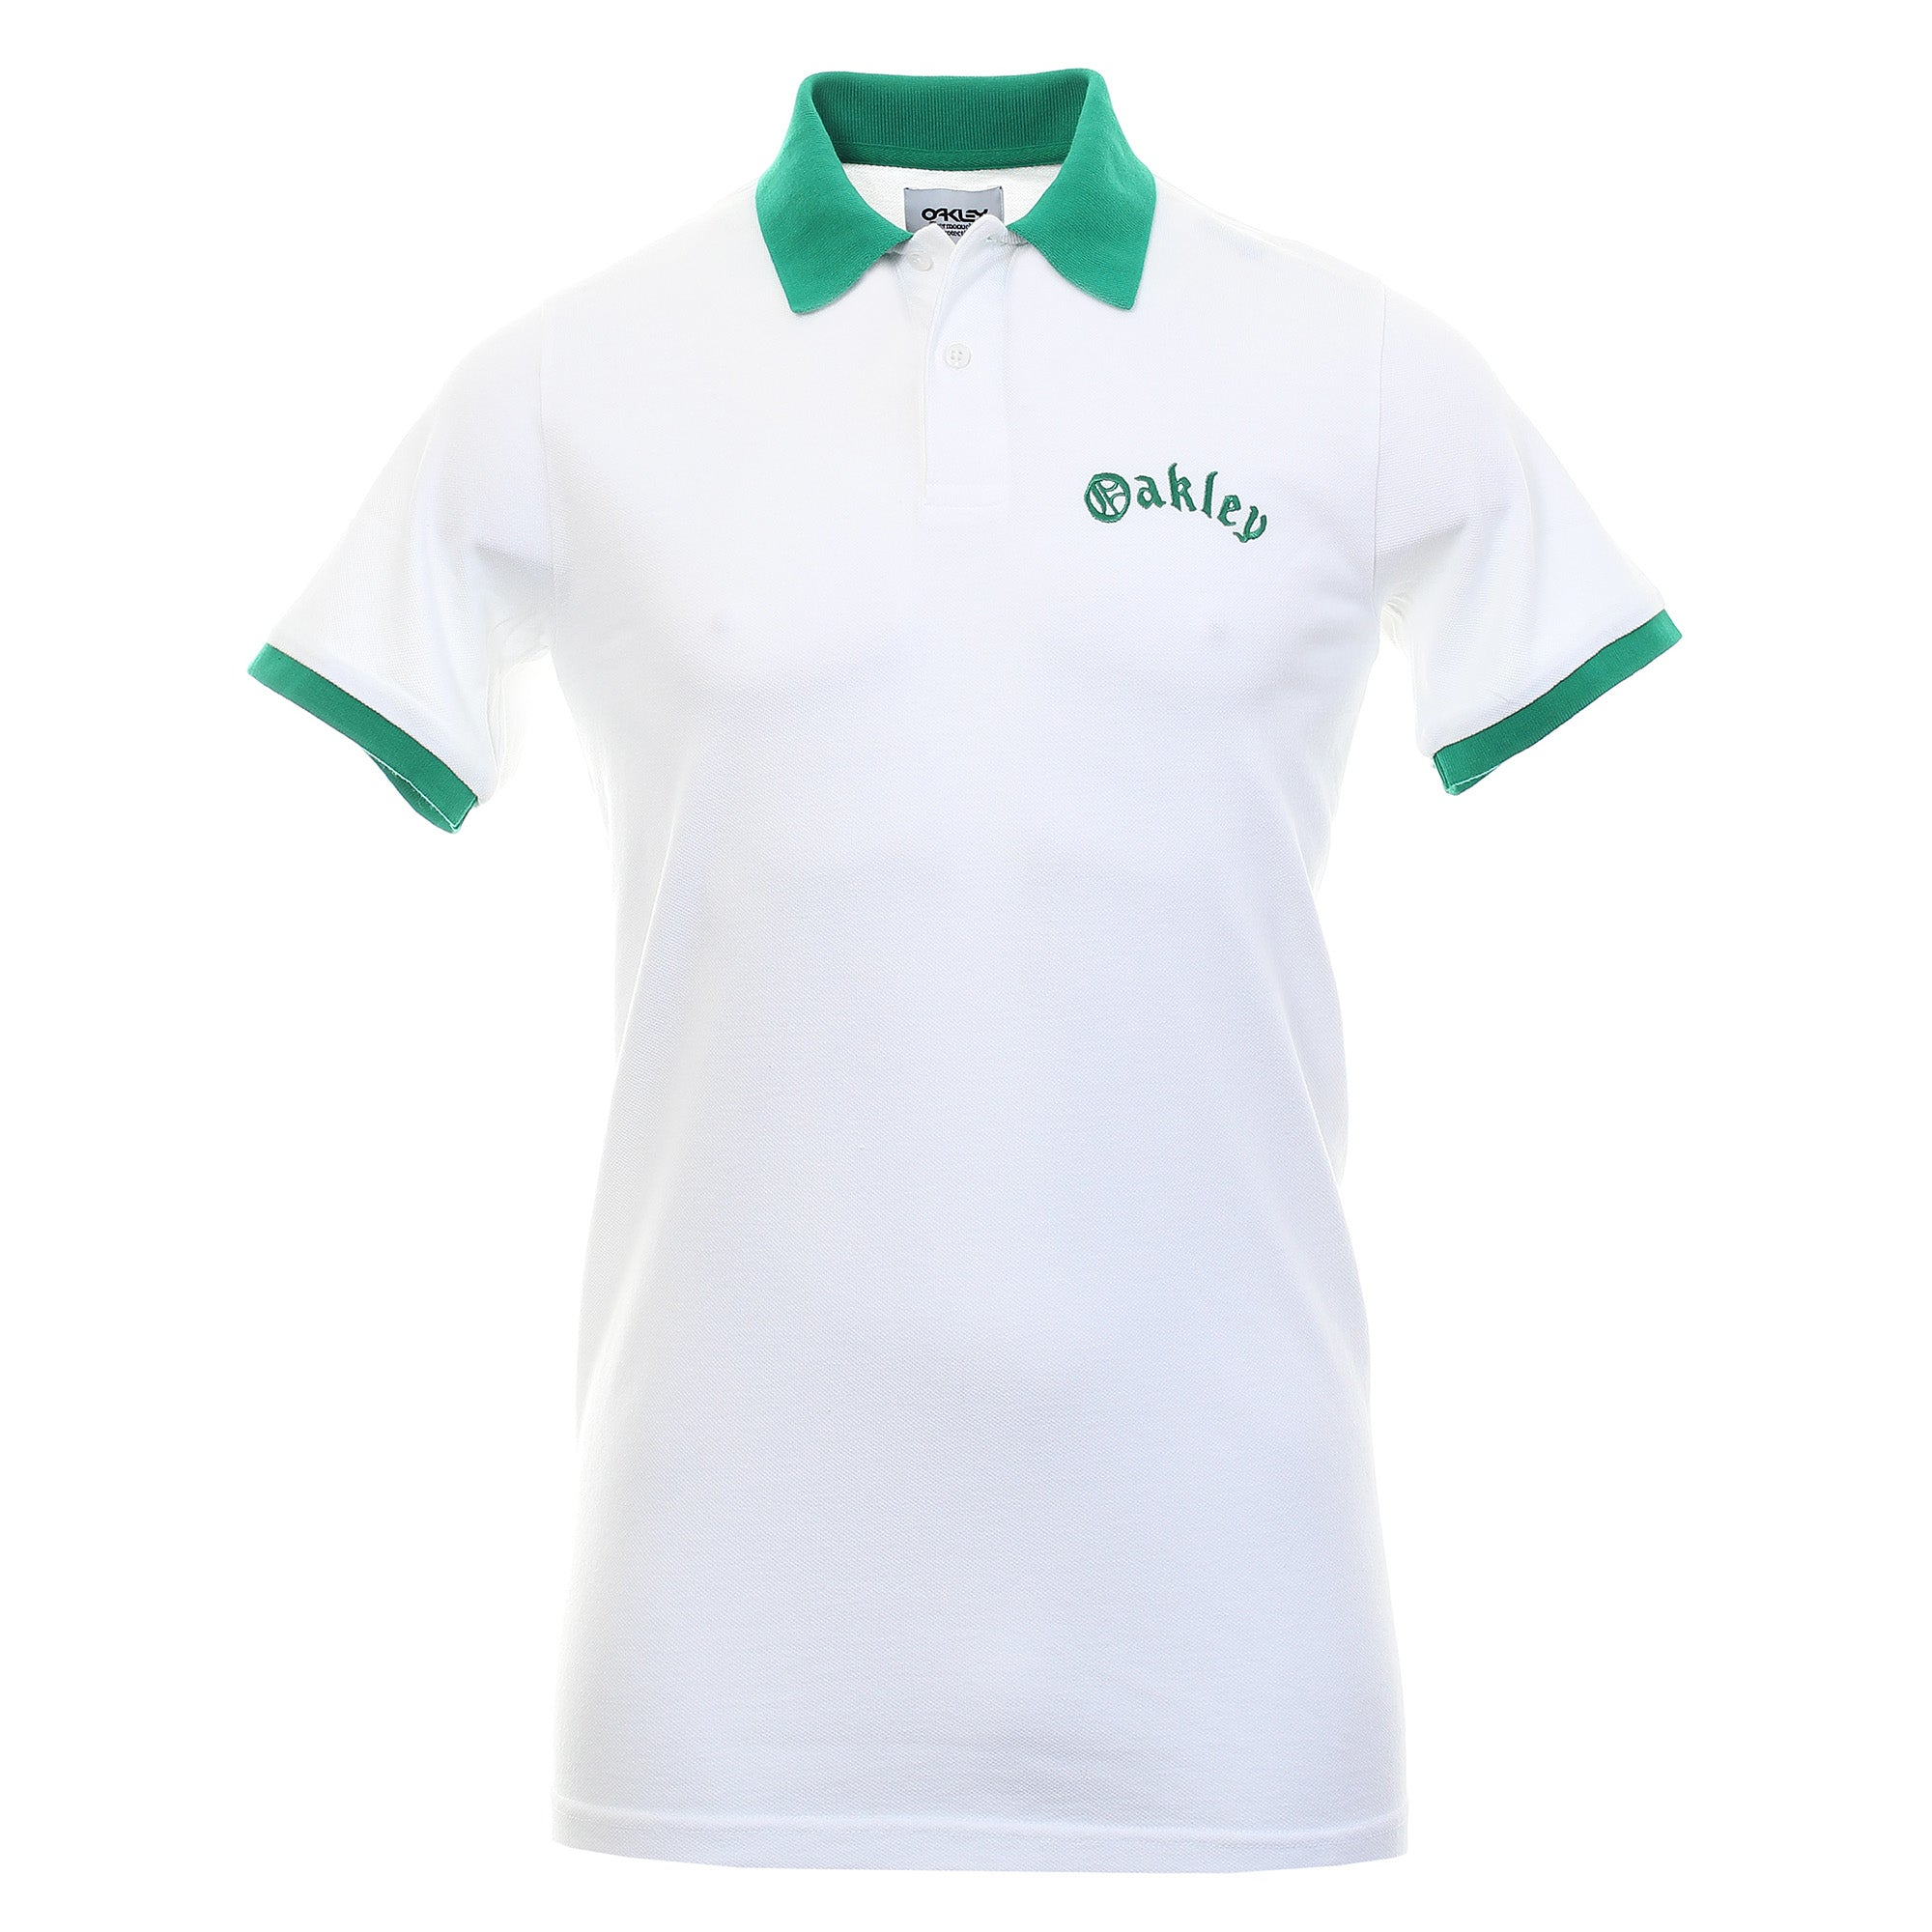 Oakley Golf TNP Piquet Shirt 434469